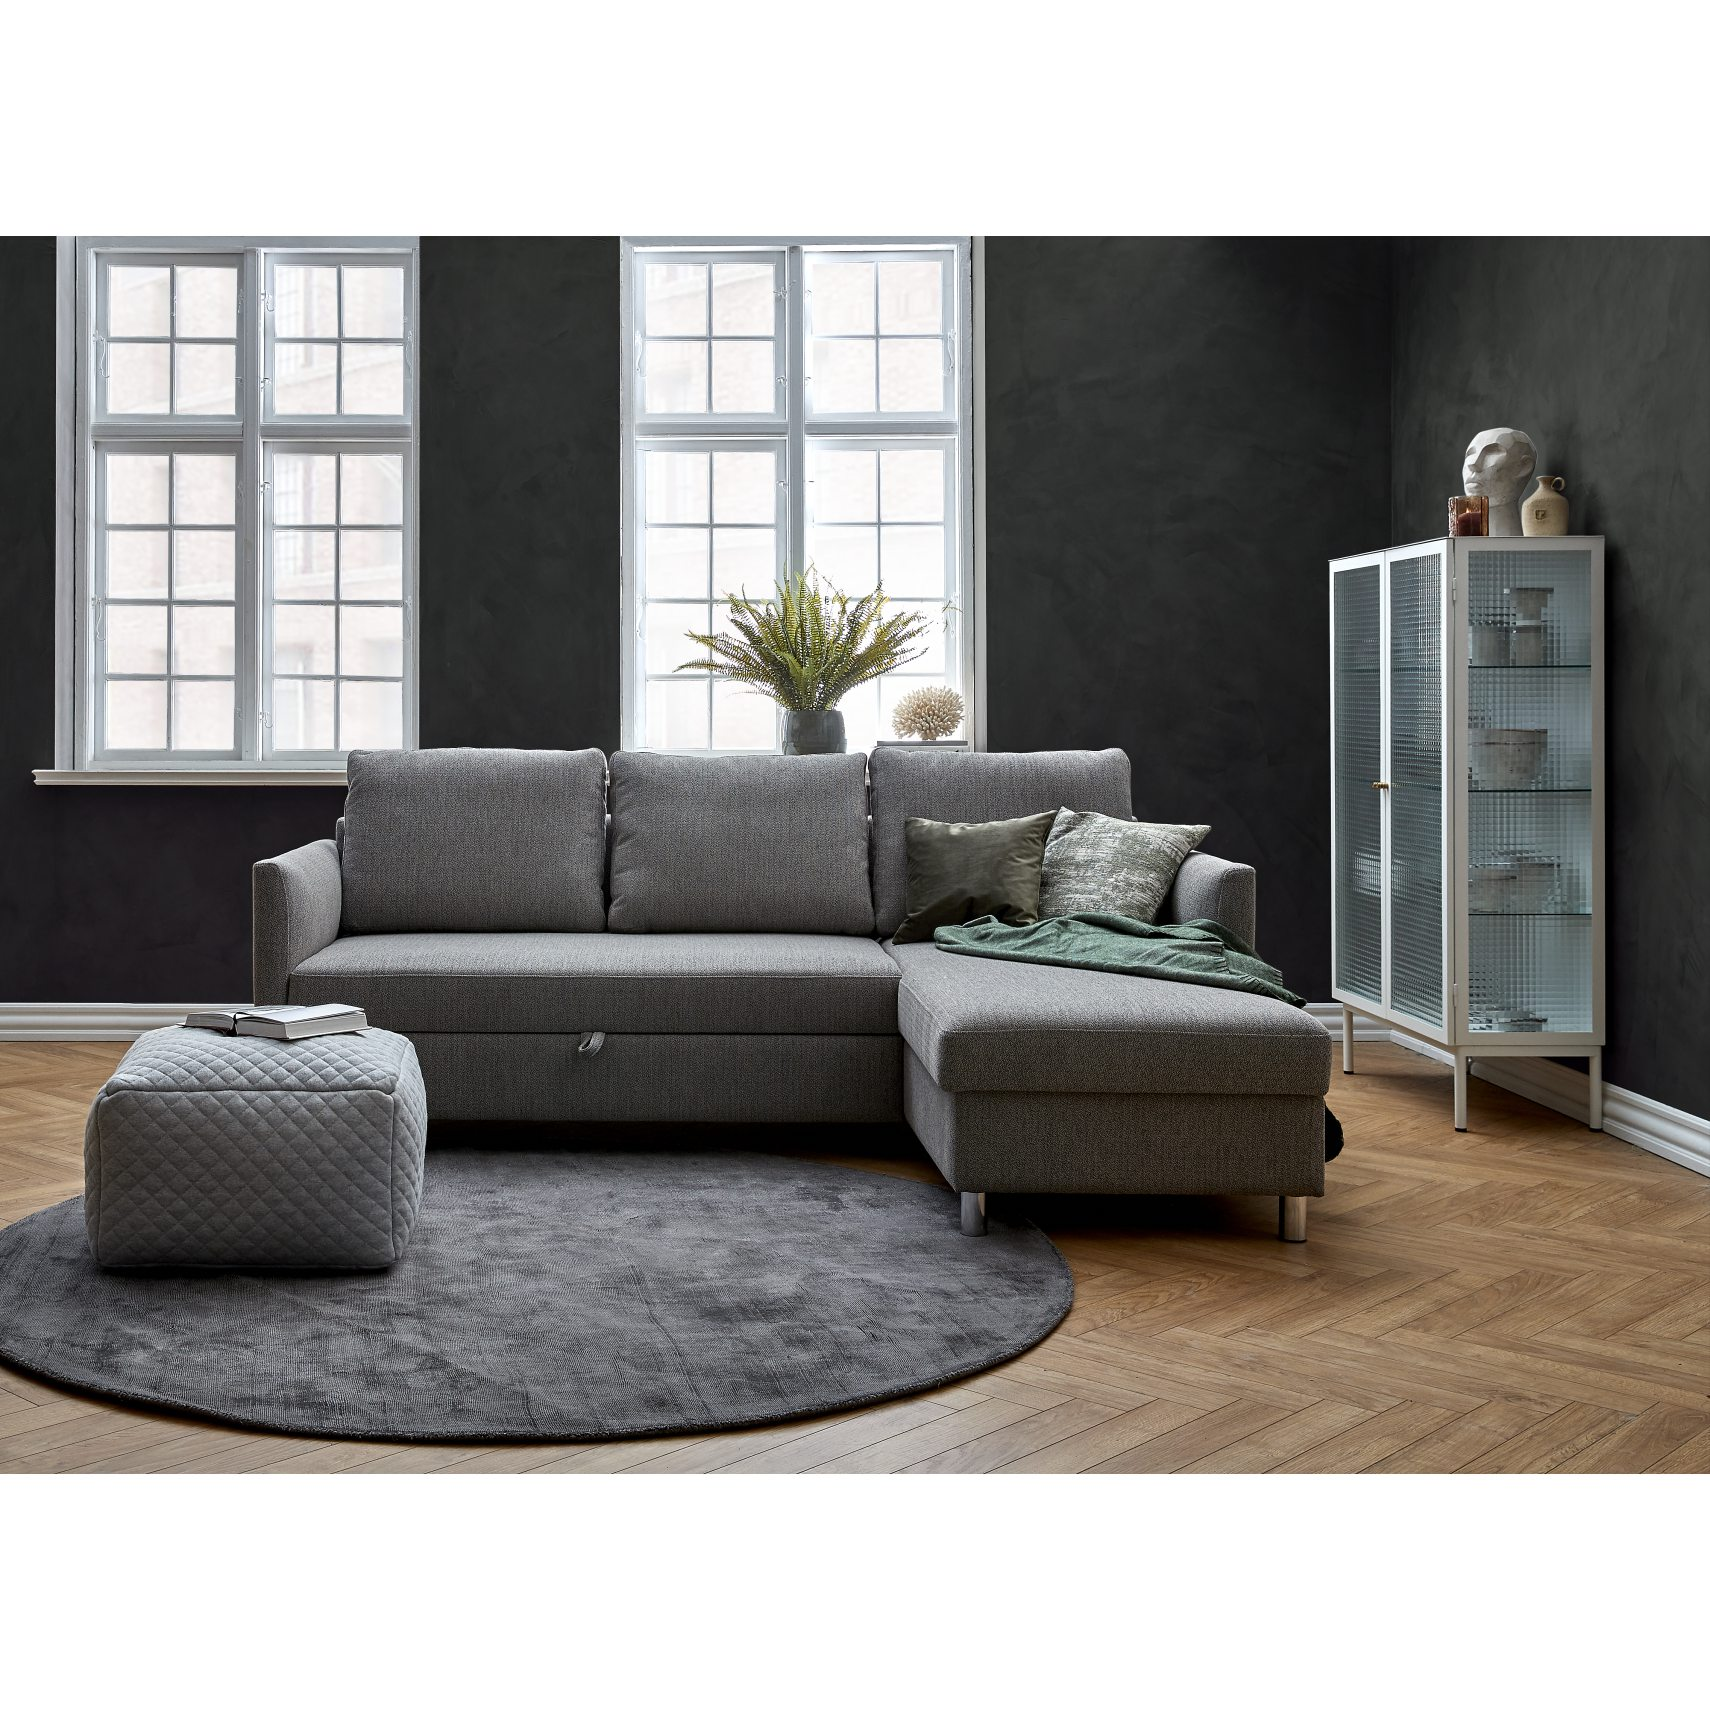 Devon Flex 260 Sovesofa